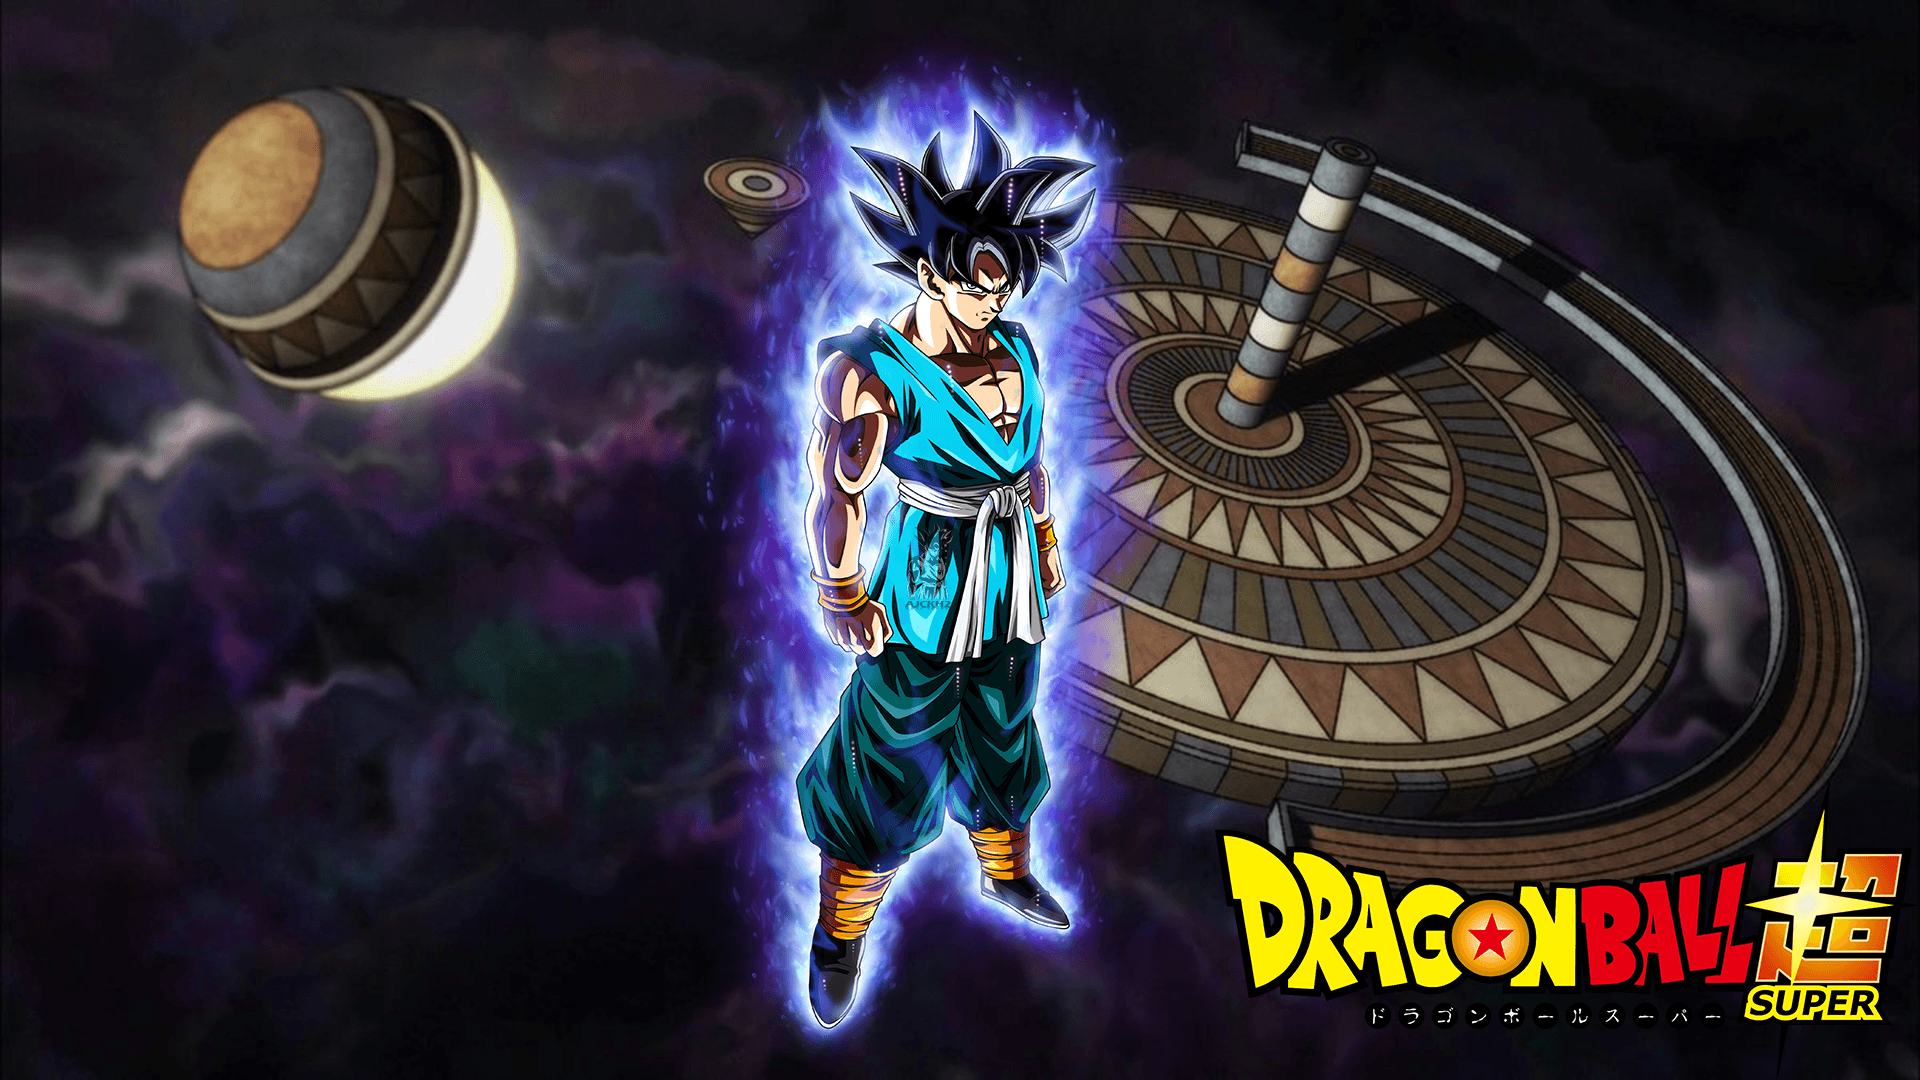 goku ultra instinct 4k, goku wallpaper ultra instinct